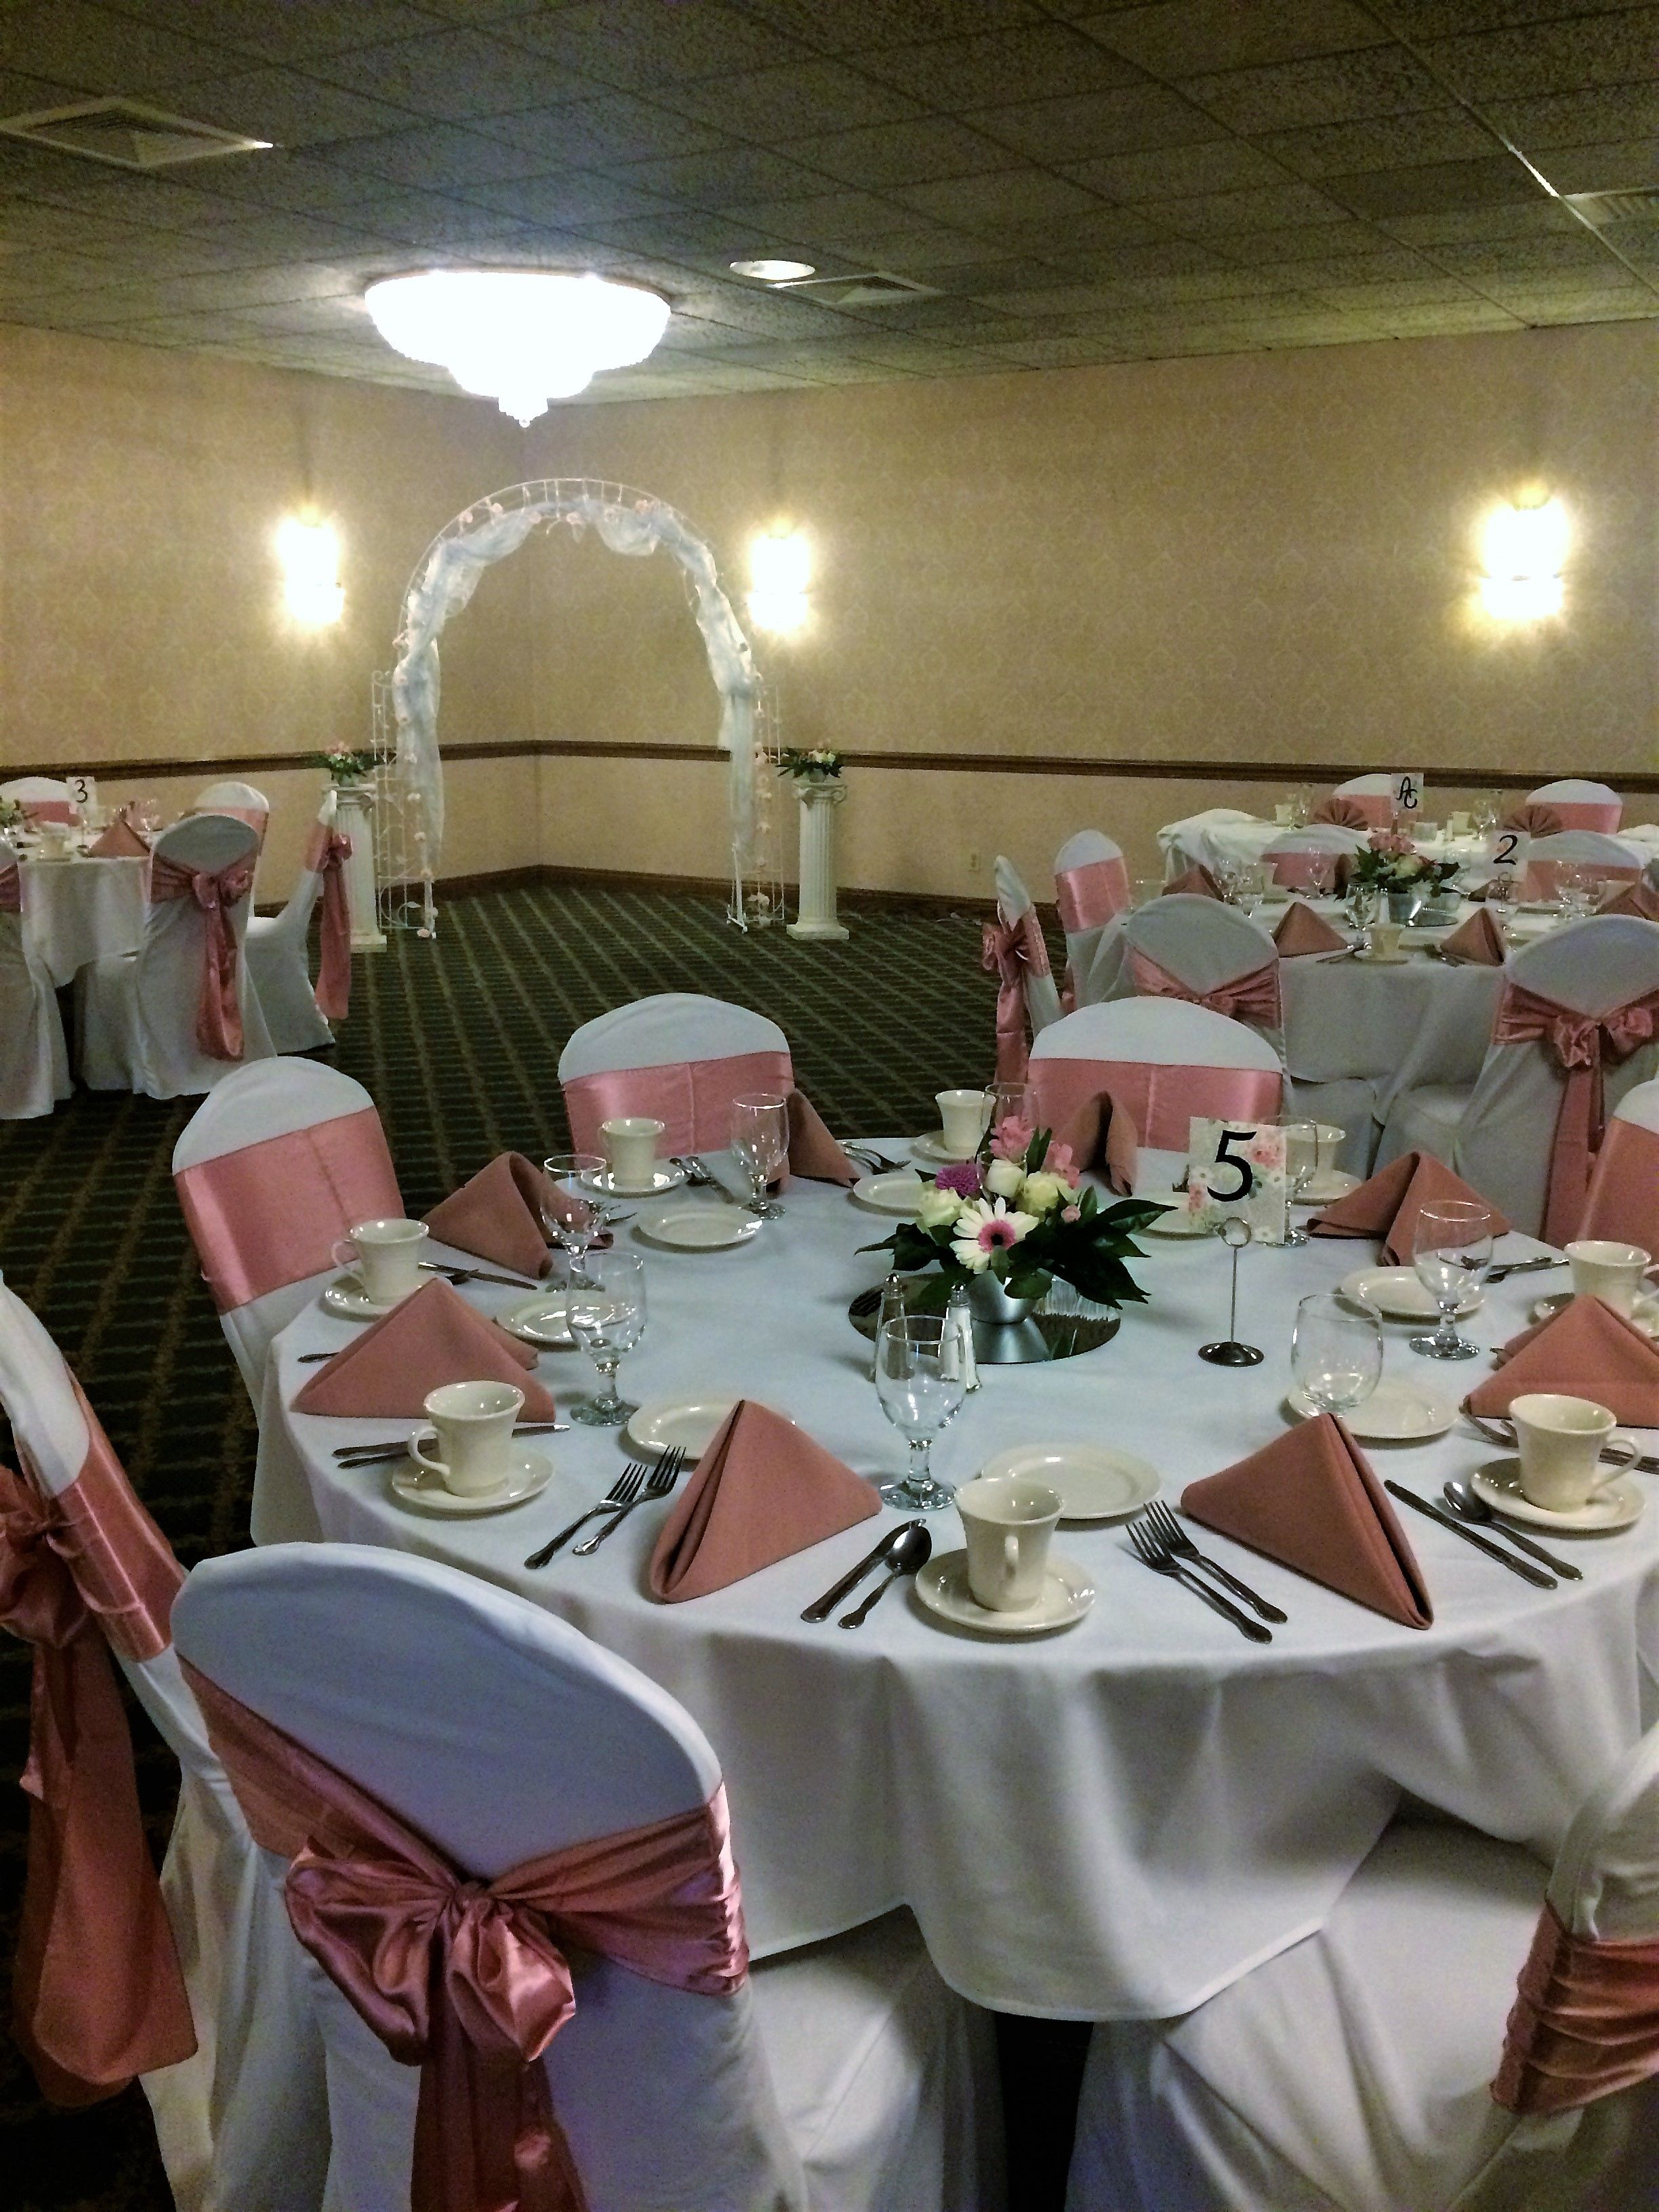 Ceremony And Reception All In One Topaz Room At Our Cleveland